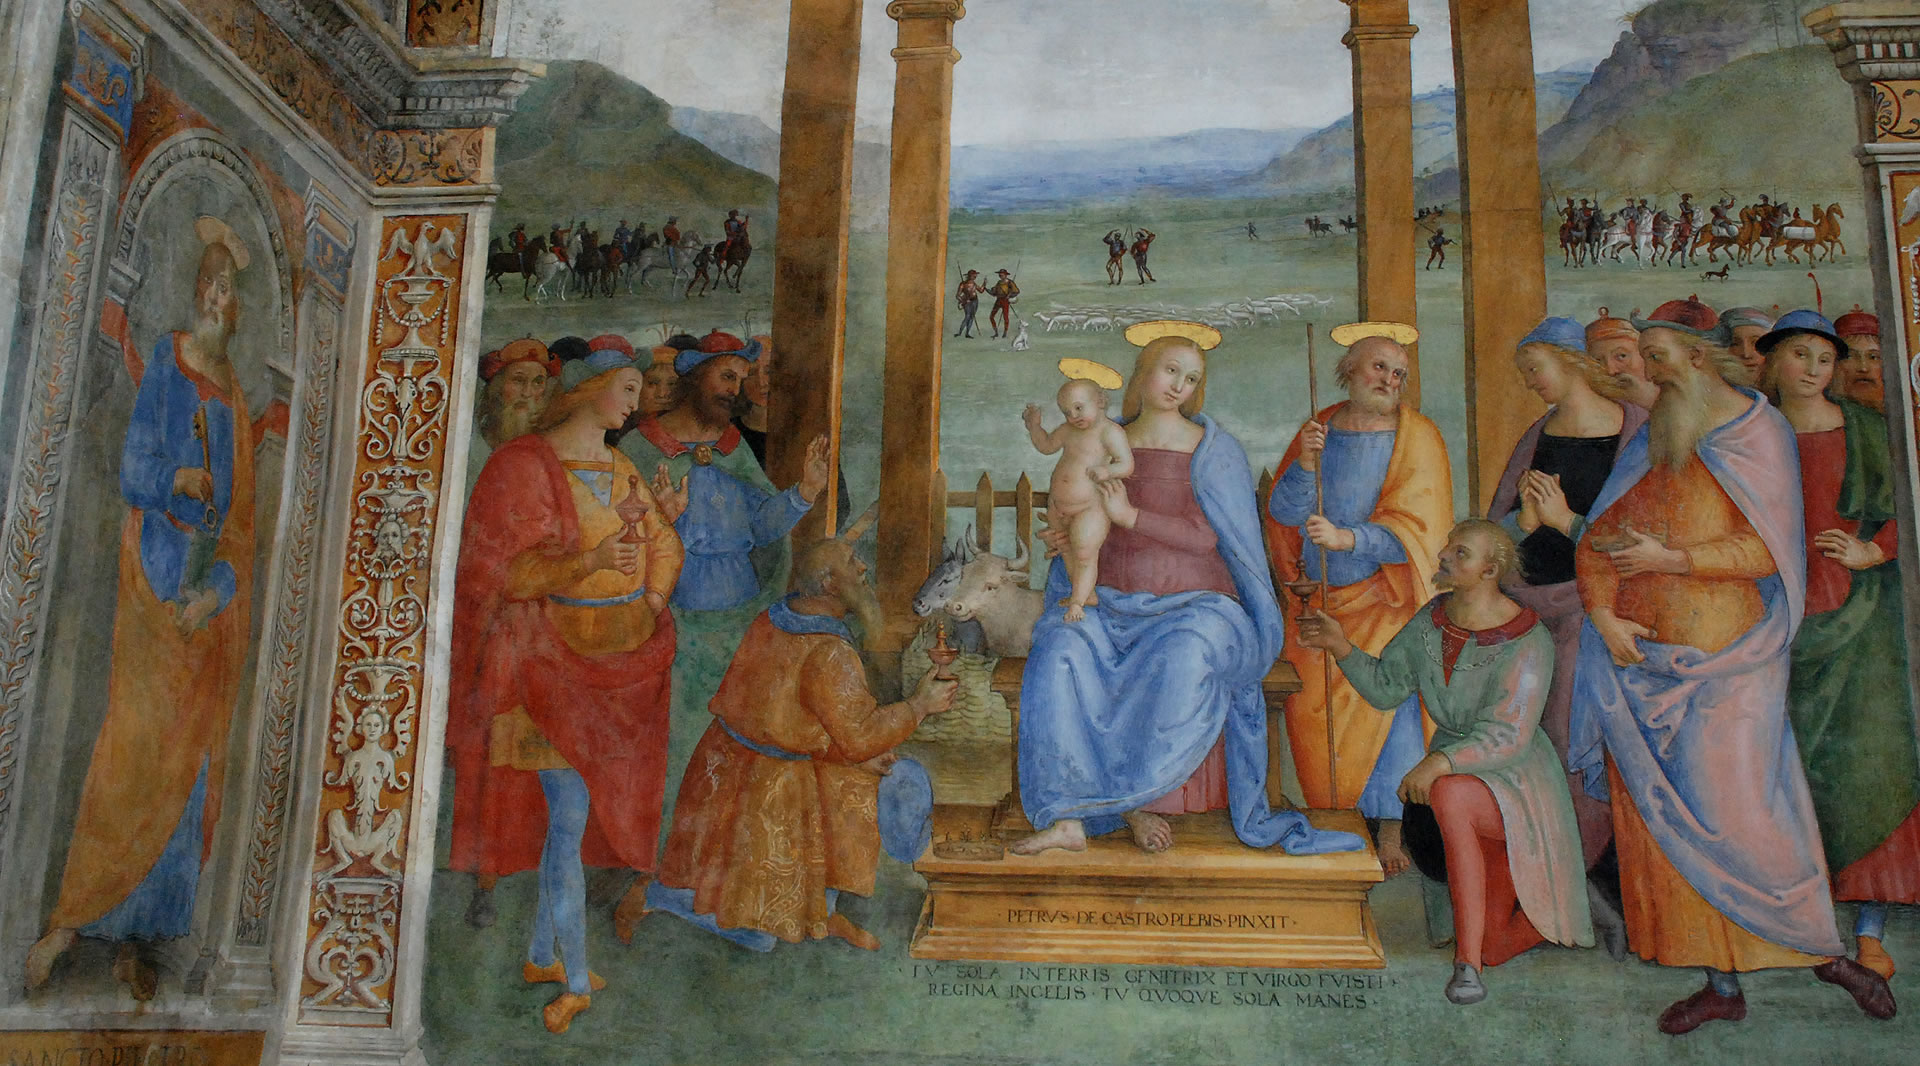 Adoration of the Magi - Trevi